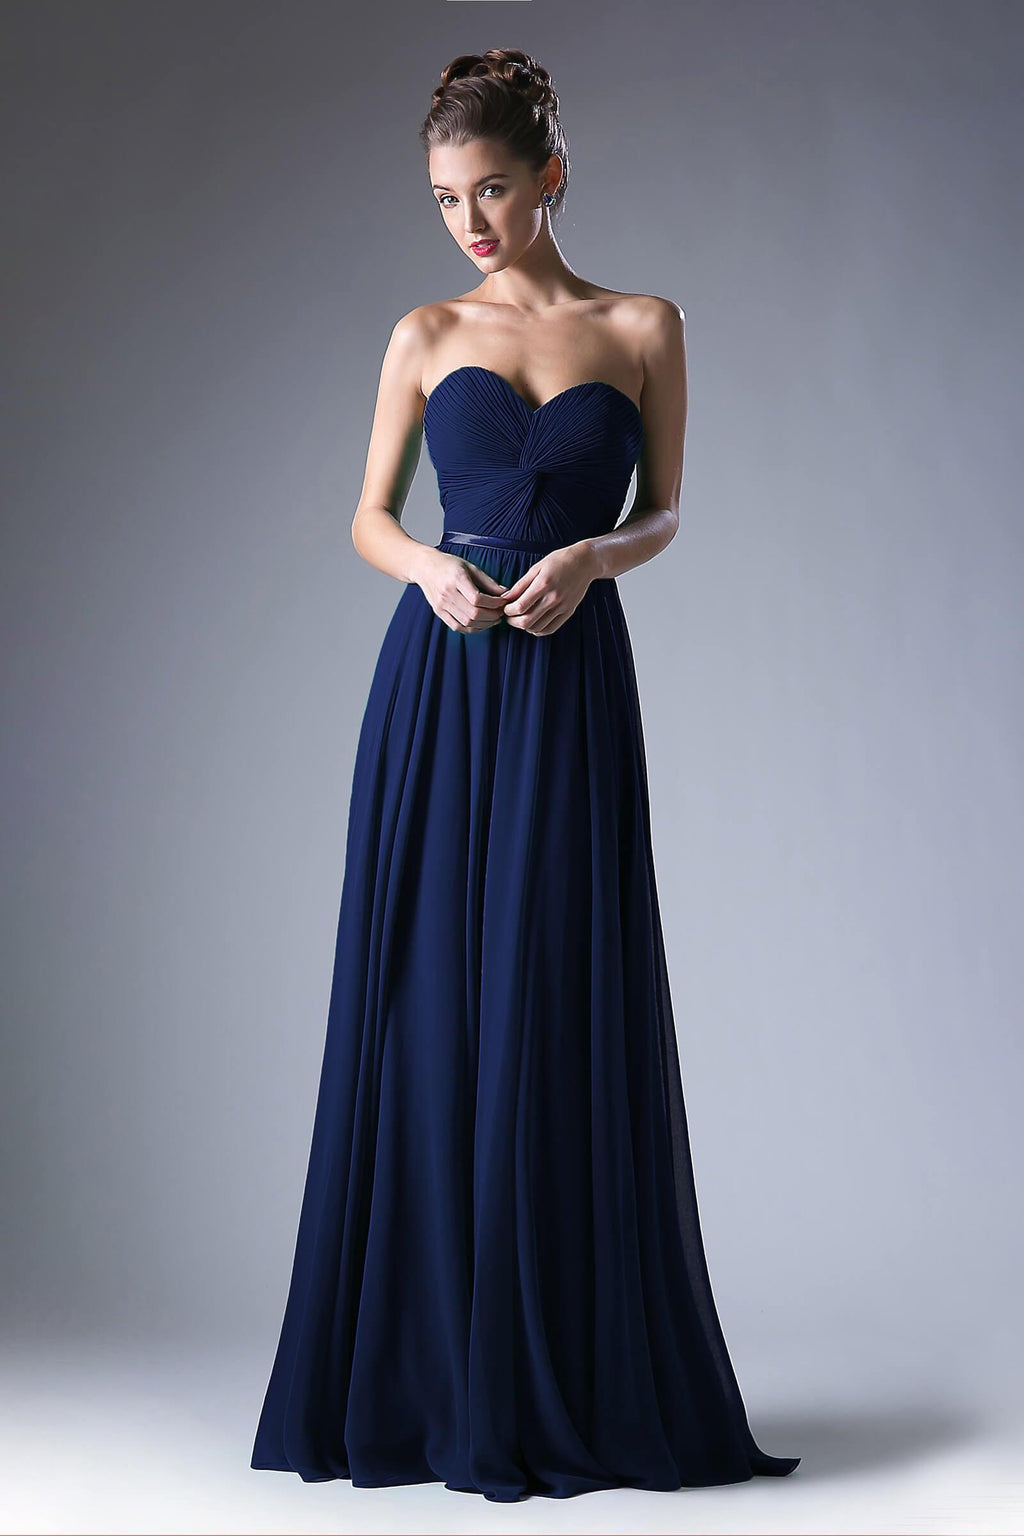 Strapless Chiffon Empire Waist Prom Dress - The Dress Outlet Navy Cinderella Divine